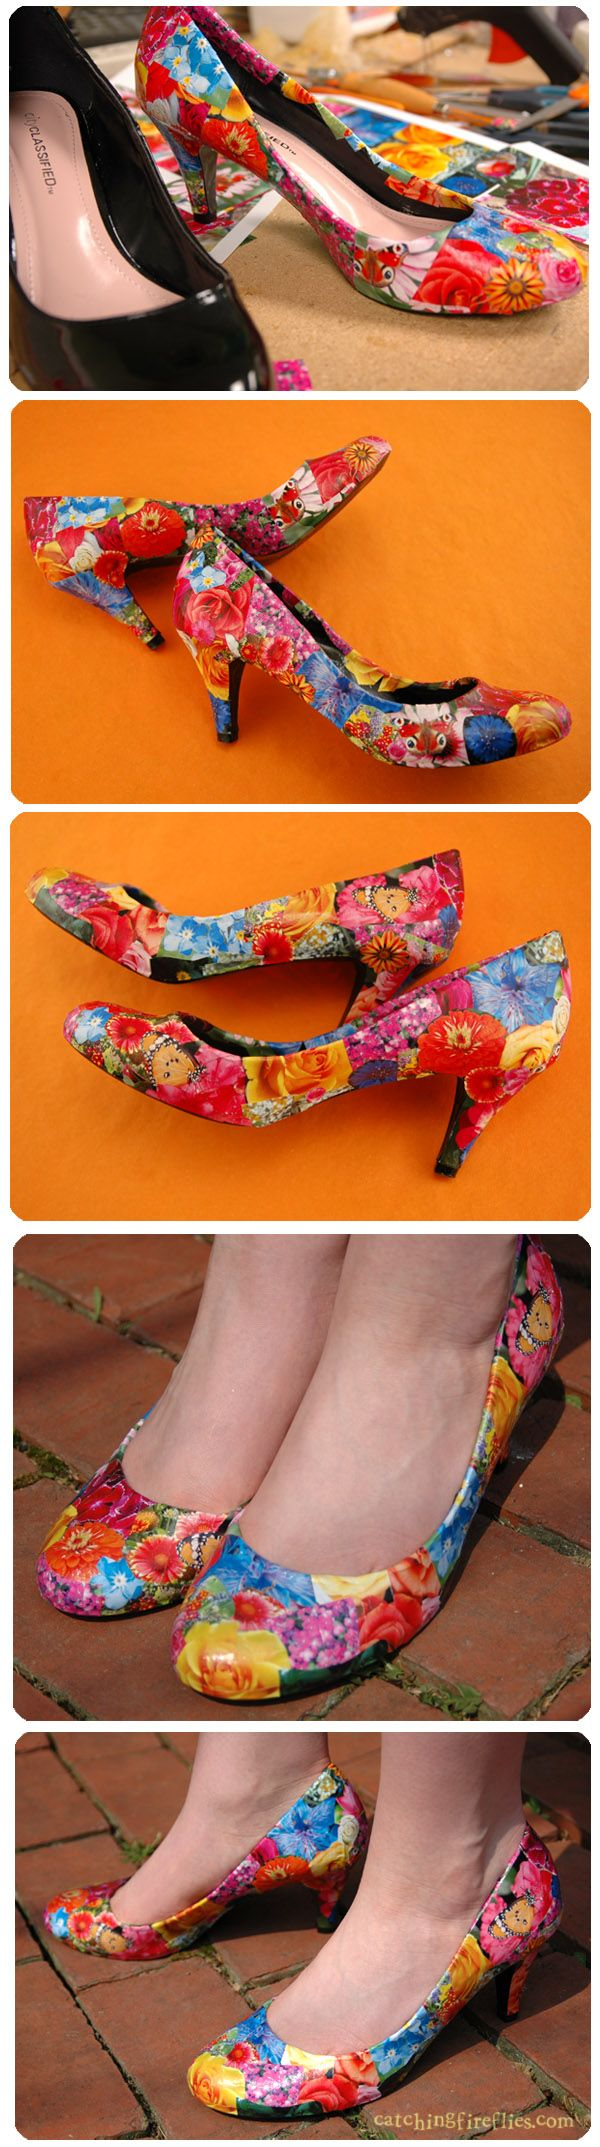 decoupaged shoes - I'm all over this! I've seen this done with comic book images too. I'm pretty sure this could <strong>мини-бар мастер класс</strong> be turned into a whole business!